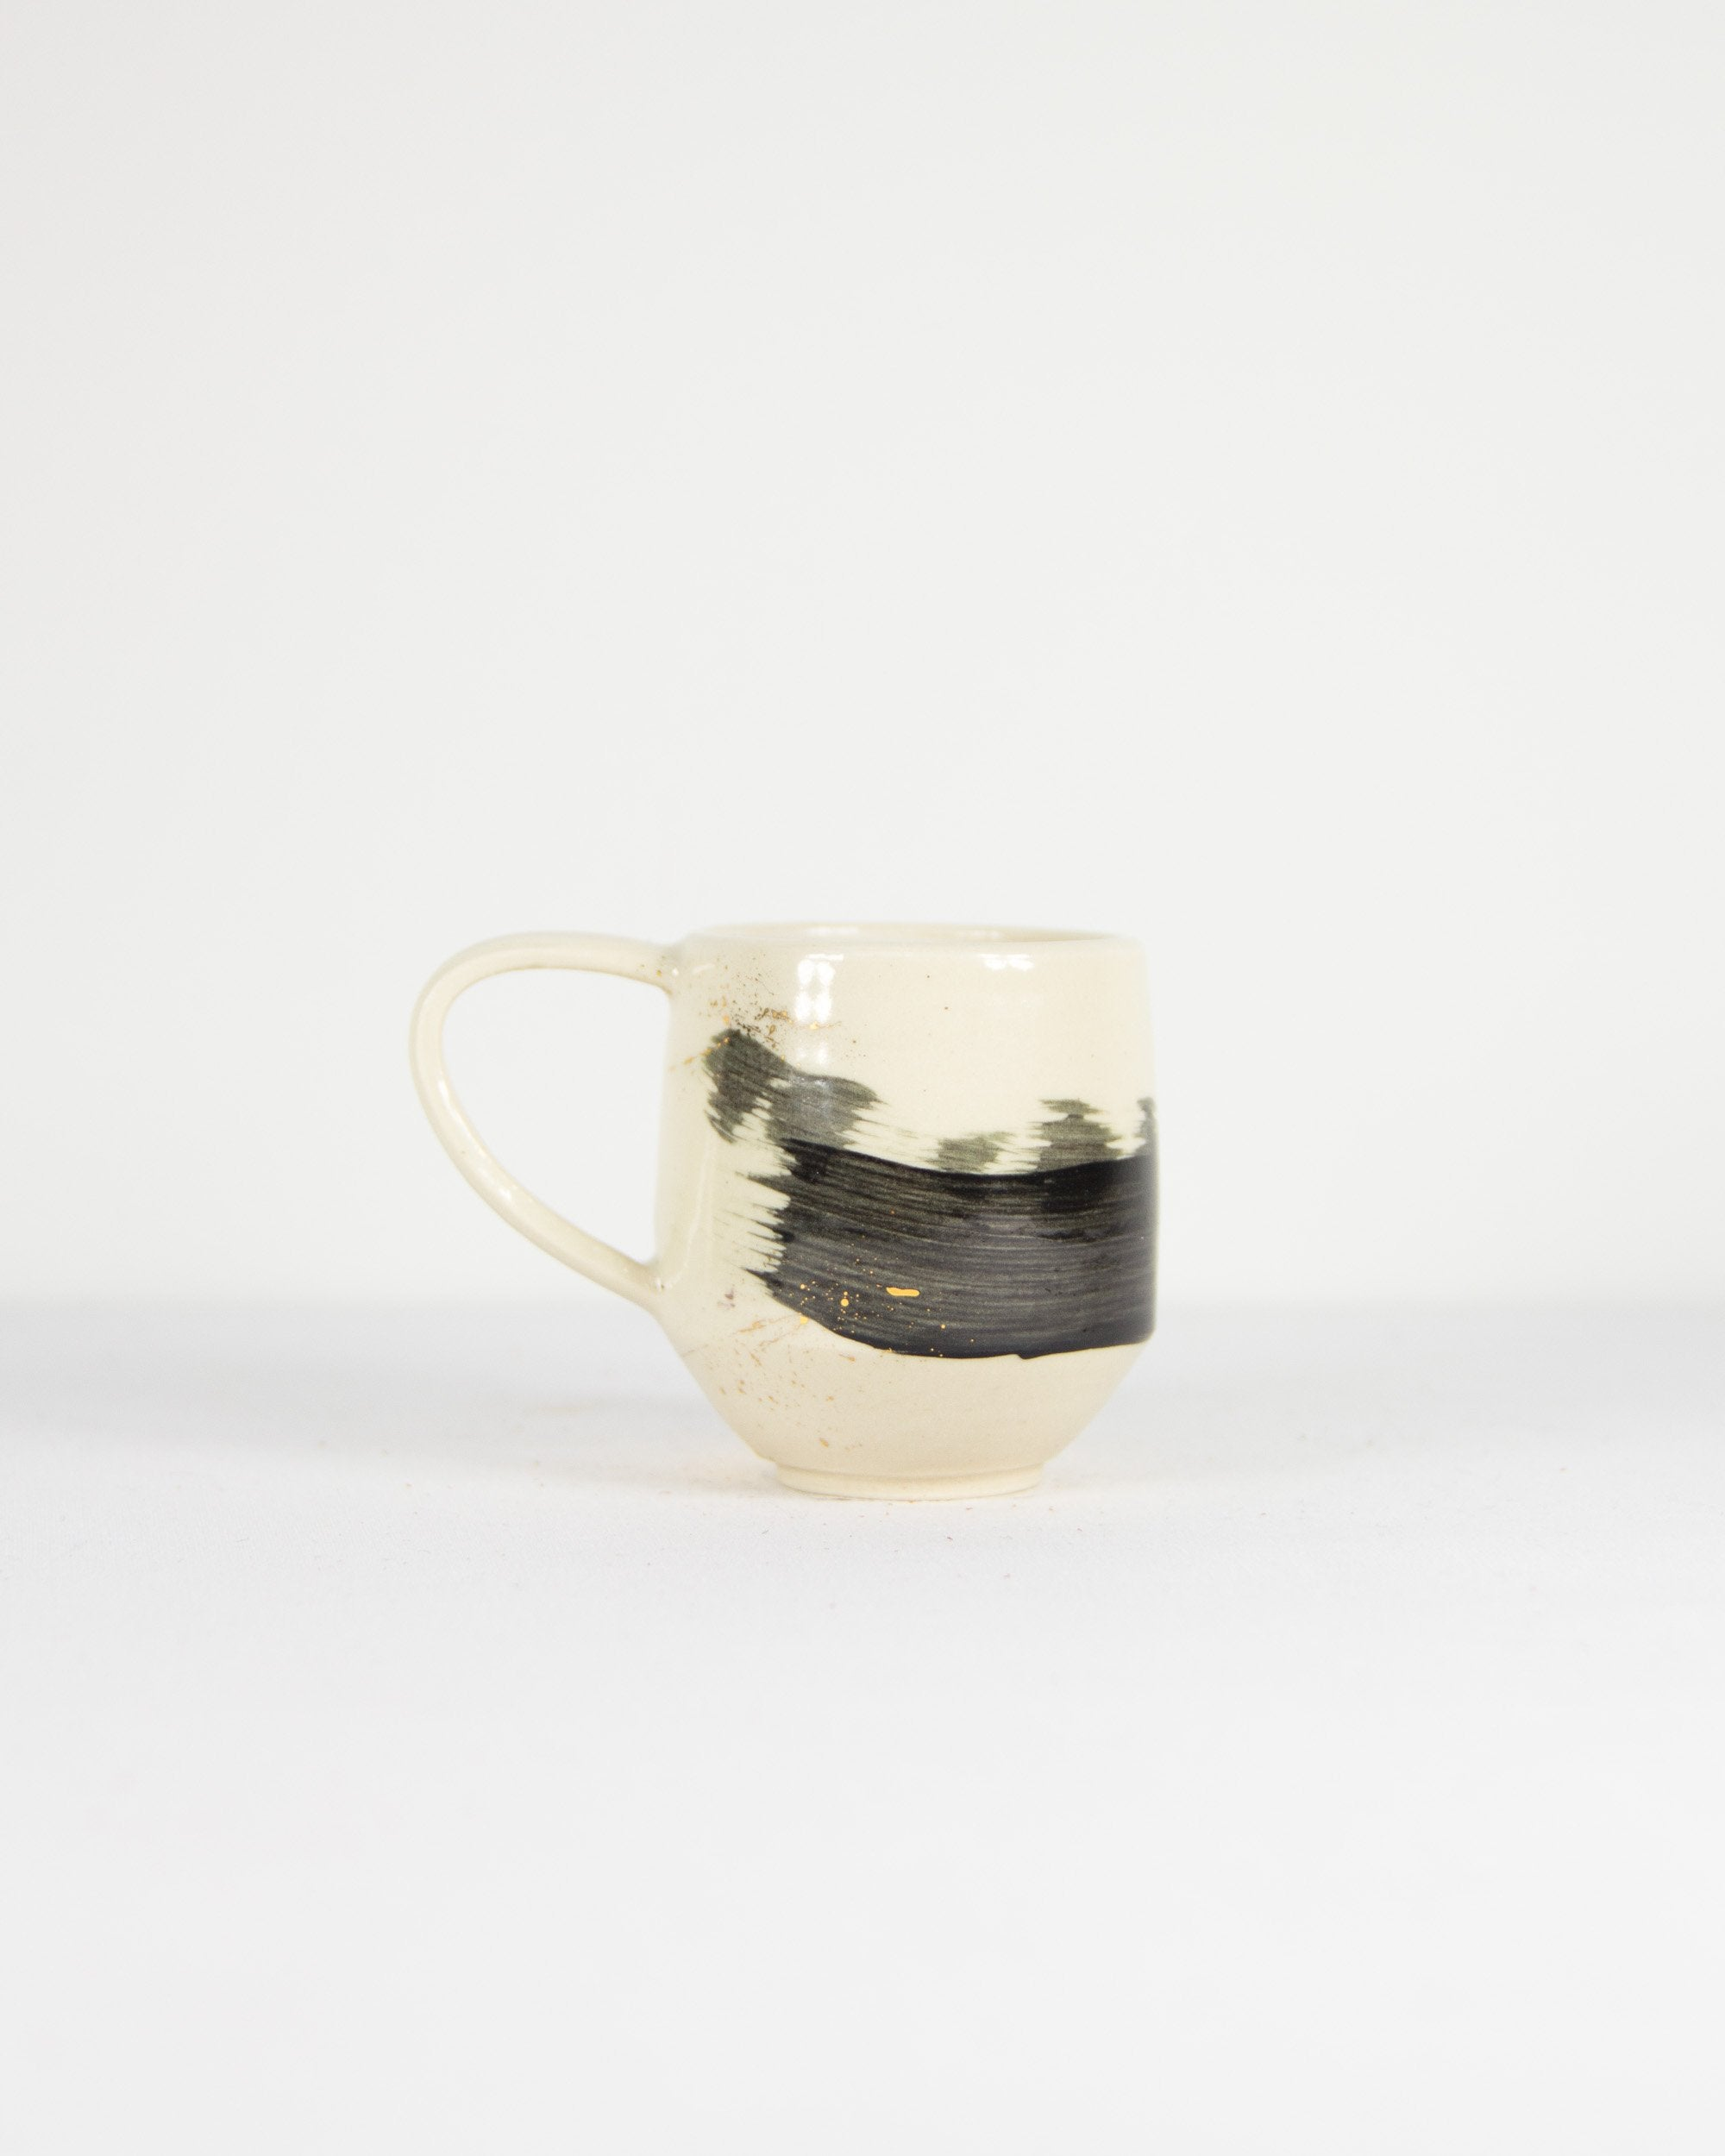 Espresso Mug-Ceramics-Box Sparrow-Abstract-Forth and Nomad